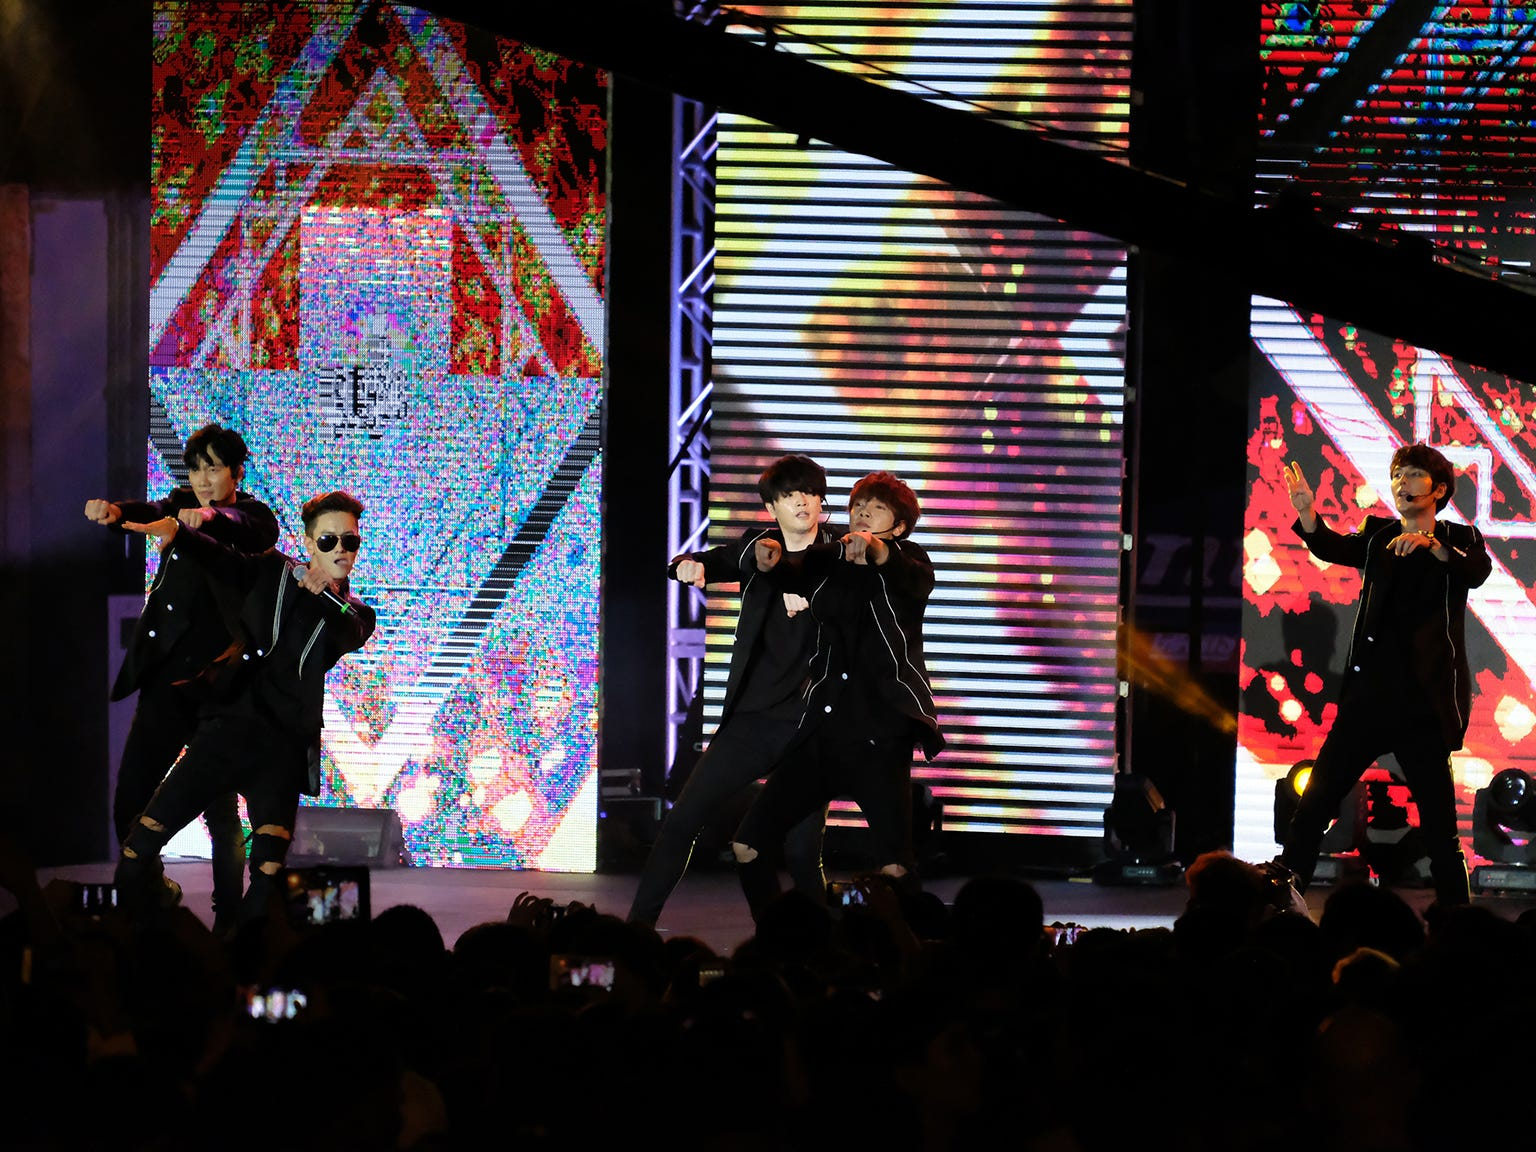 The South Korean K-pop group Supernova performs at the MBC Music K-Pop Concert  Saturday evening, December 1, 2018 at the Governor Joseph Flores Memorial Park.